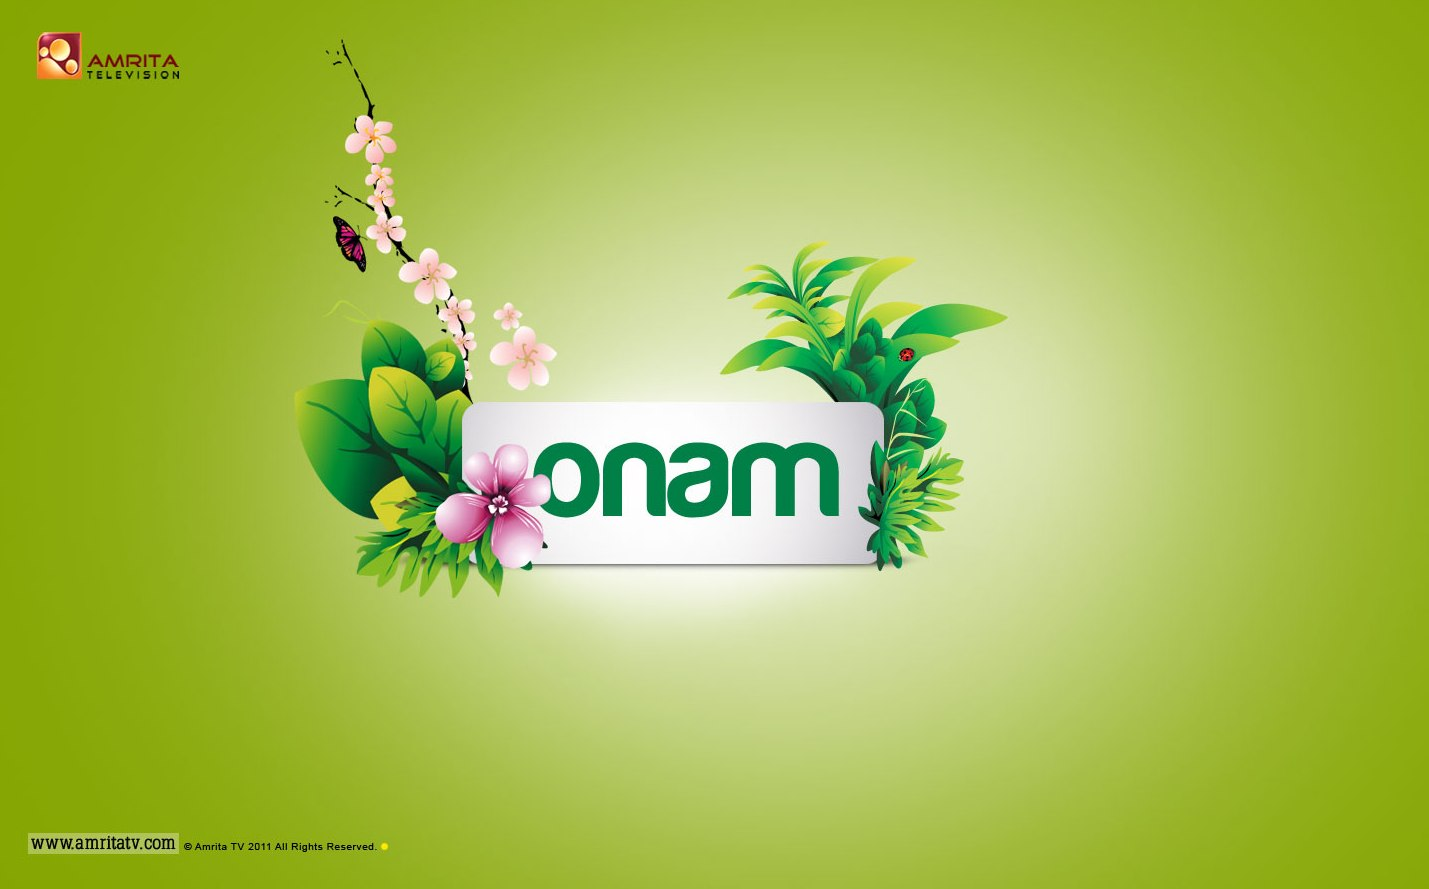 http://1.bp.blogspot.com/-zhJcxr77fq8/UDNTEhh-RSI/AAAAAAAADg4/jKabA5tv7RE/s1600/Happy-Onam-2012-wallpapers+%281%29.jpg